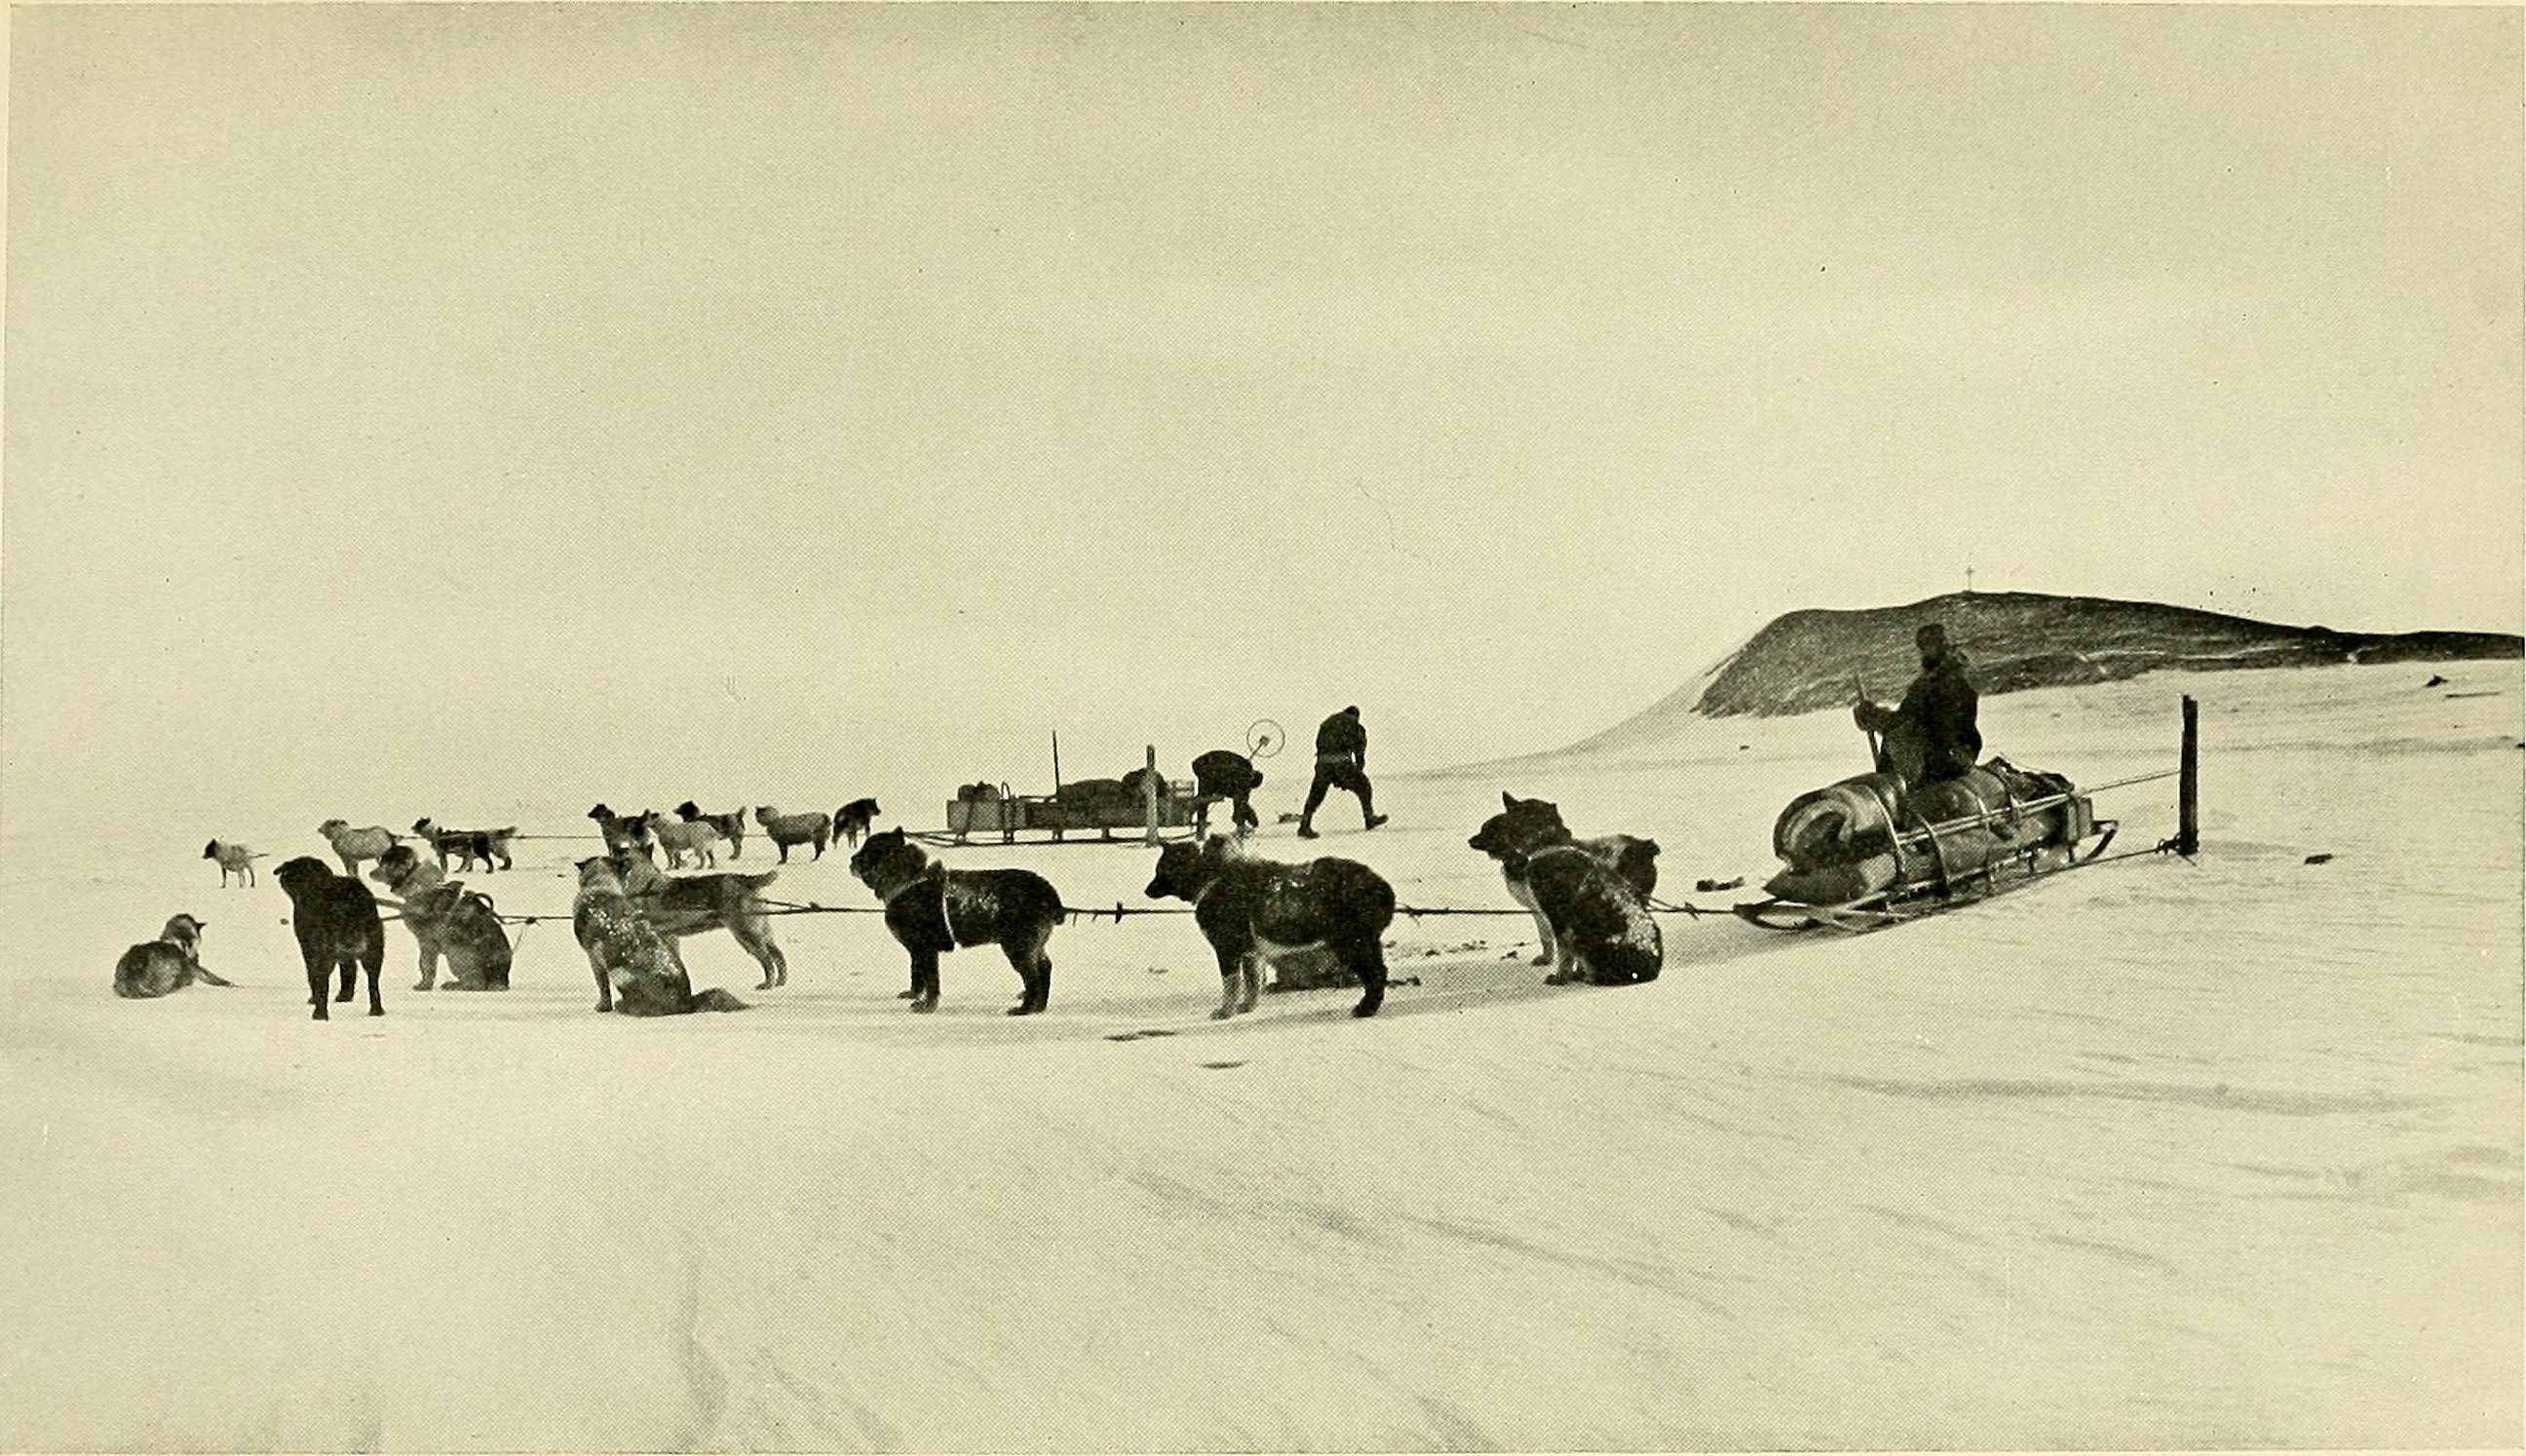 FileThe Worst Journey In The World Antarctic 1910 1913 1922